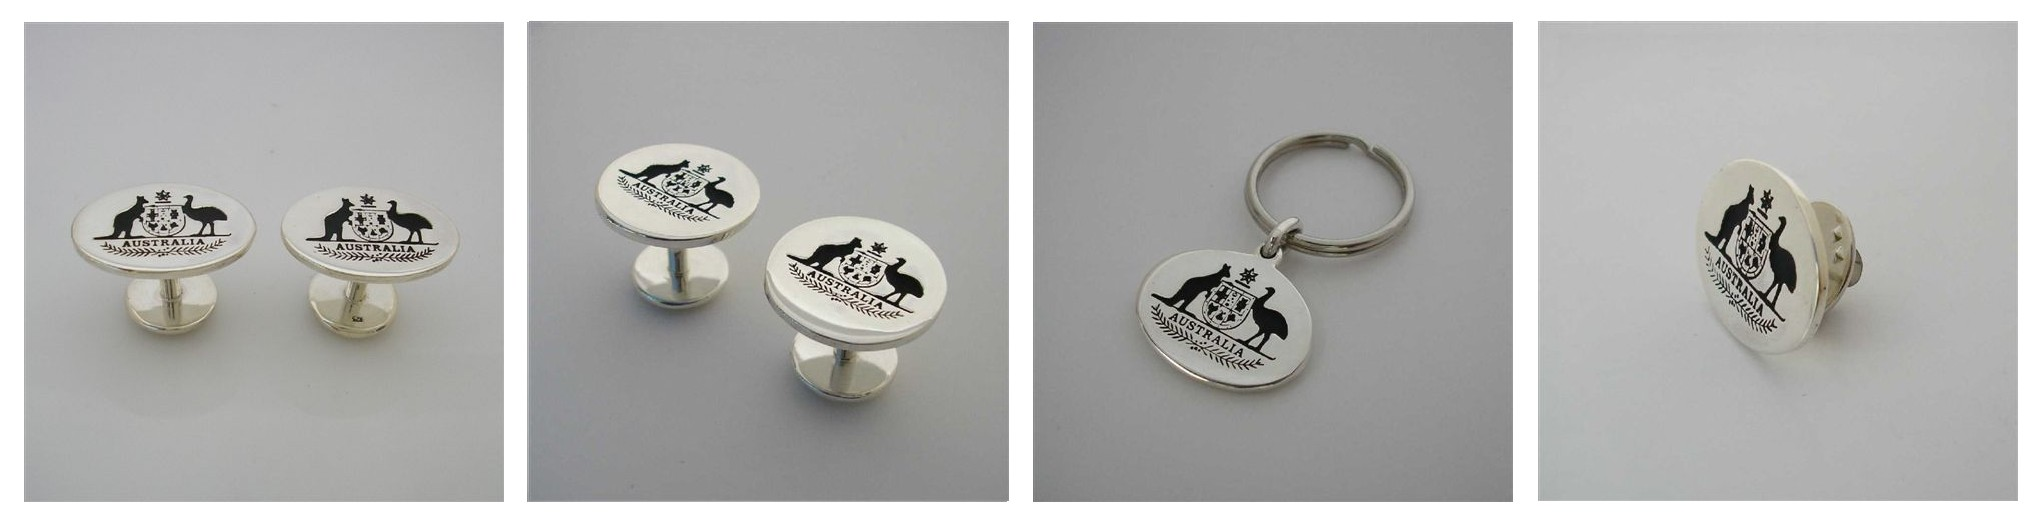 Commissioned by the Prime Minister of Australia and Cabinet  to create the Australian Coat of Arms , Cuff Links Key Rings and Lapel Pins .